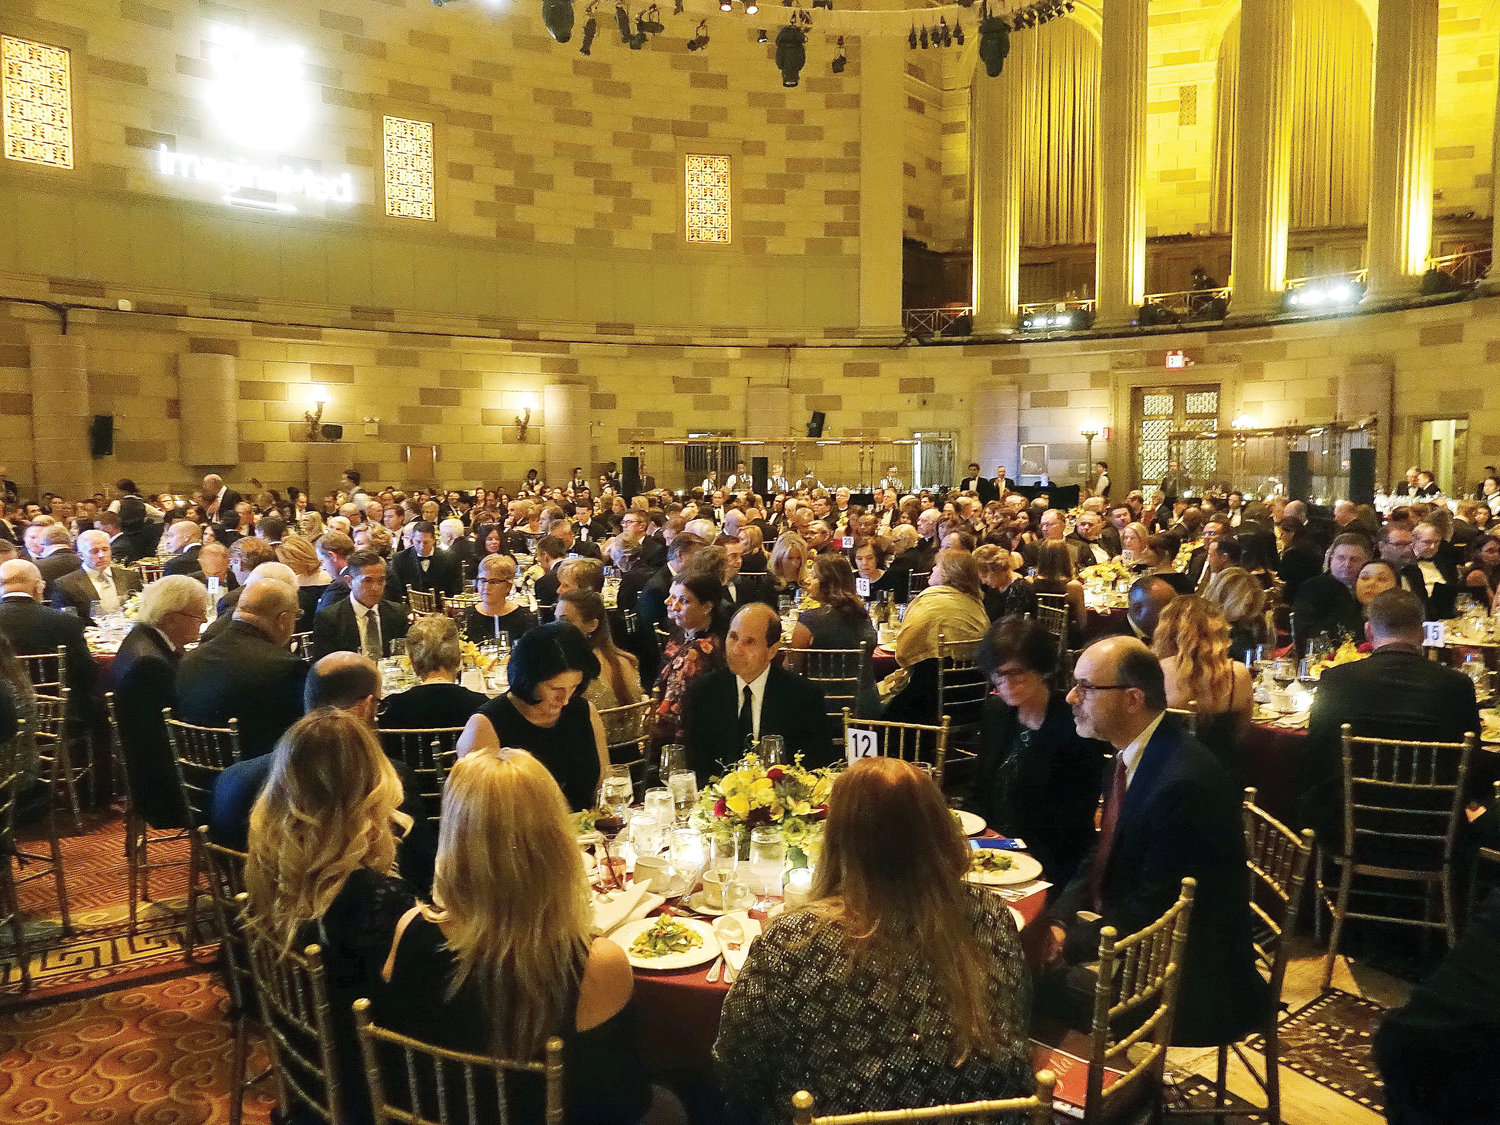 More than 500 people attended the gala at Gotham Hall in Manhattan. A record $1.5 million was raised to assist the health and social needs of New York's elderly, poor and people with special needs.